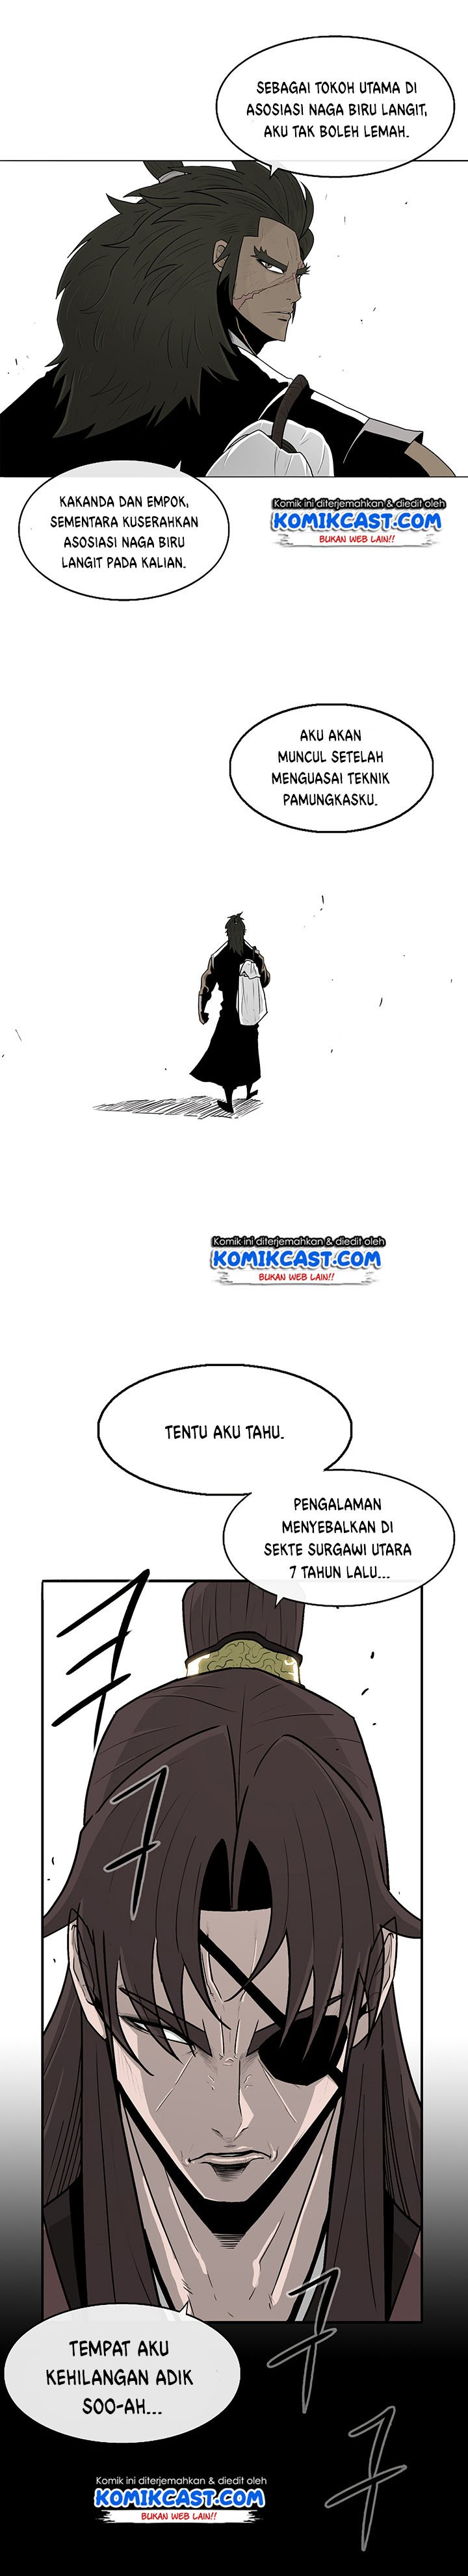 Legend of the Northern Blade Chapter 57 Bahasa Indonesia